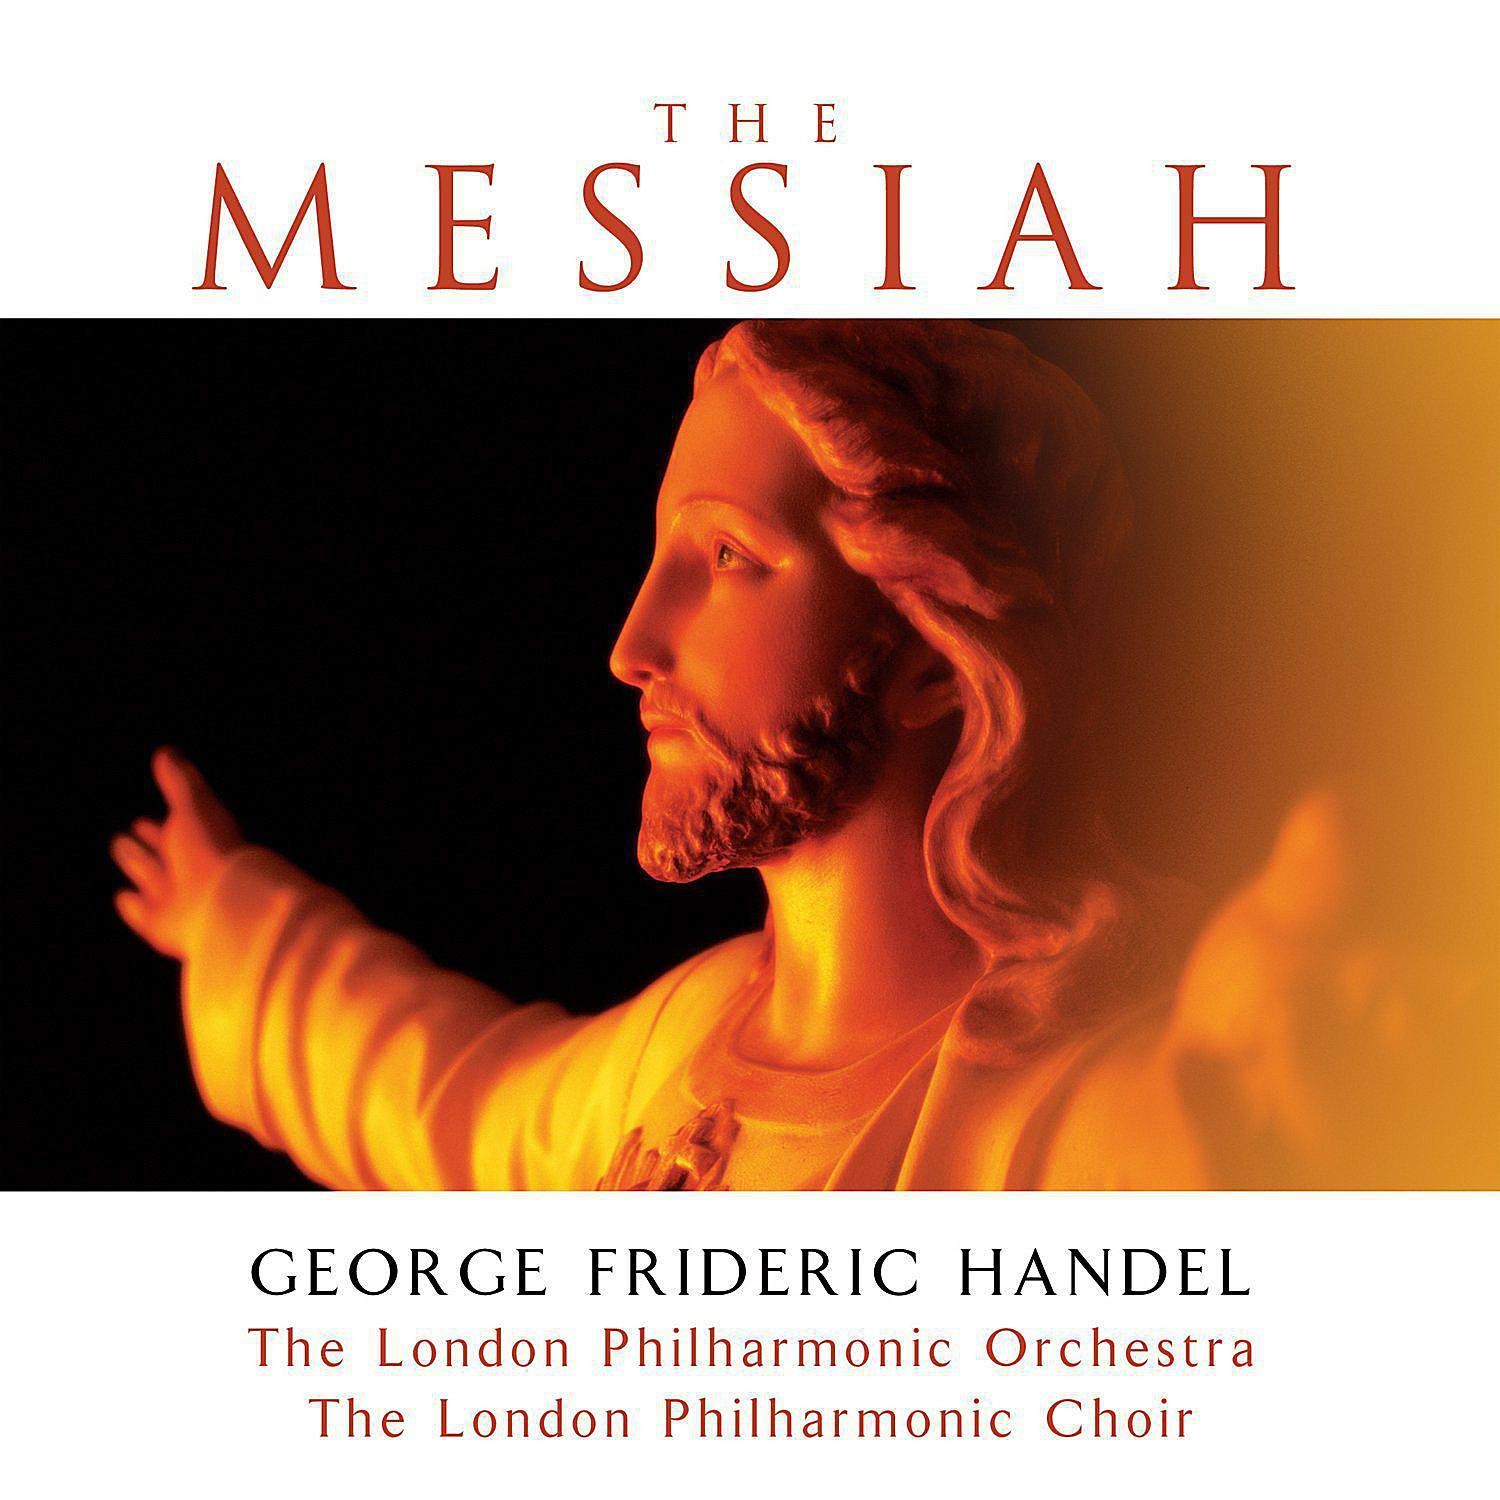 Handel's Messiah, performed by The London Philharmonic Orchestra & Choir.